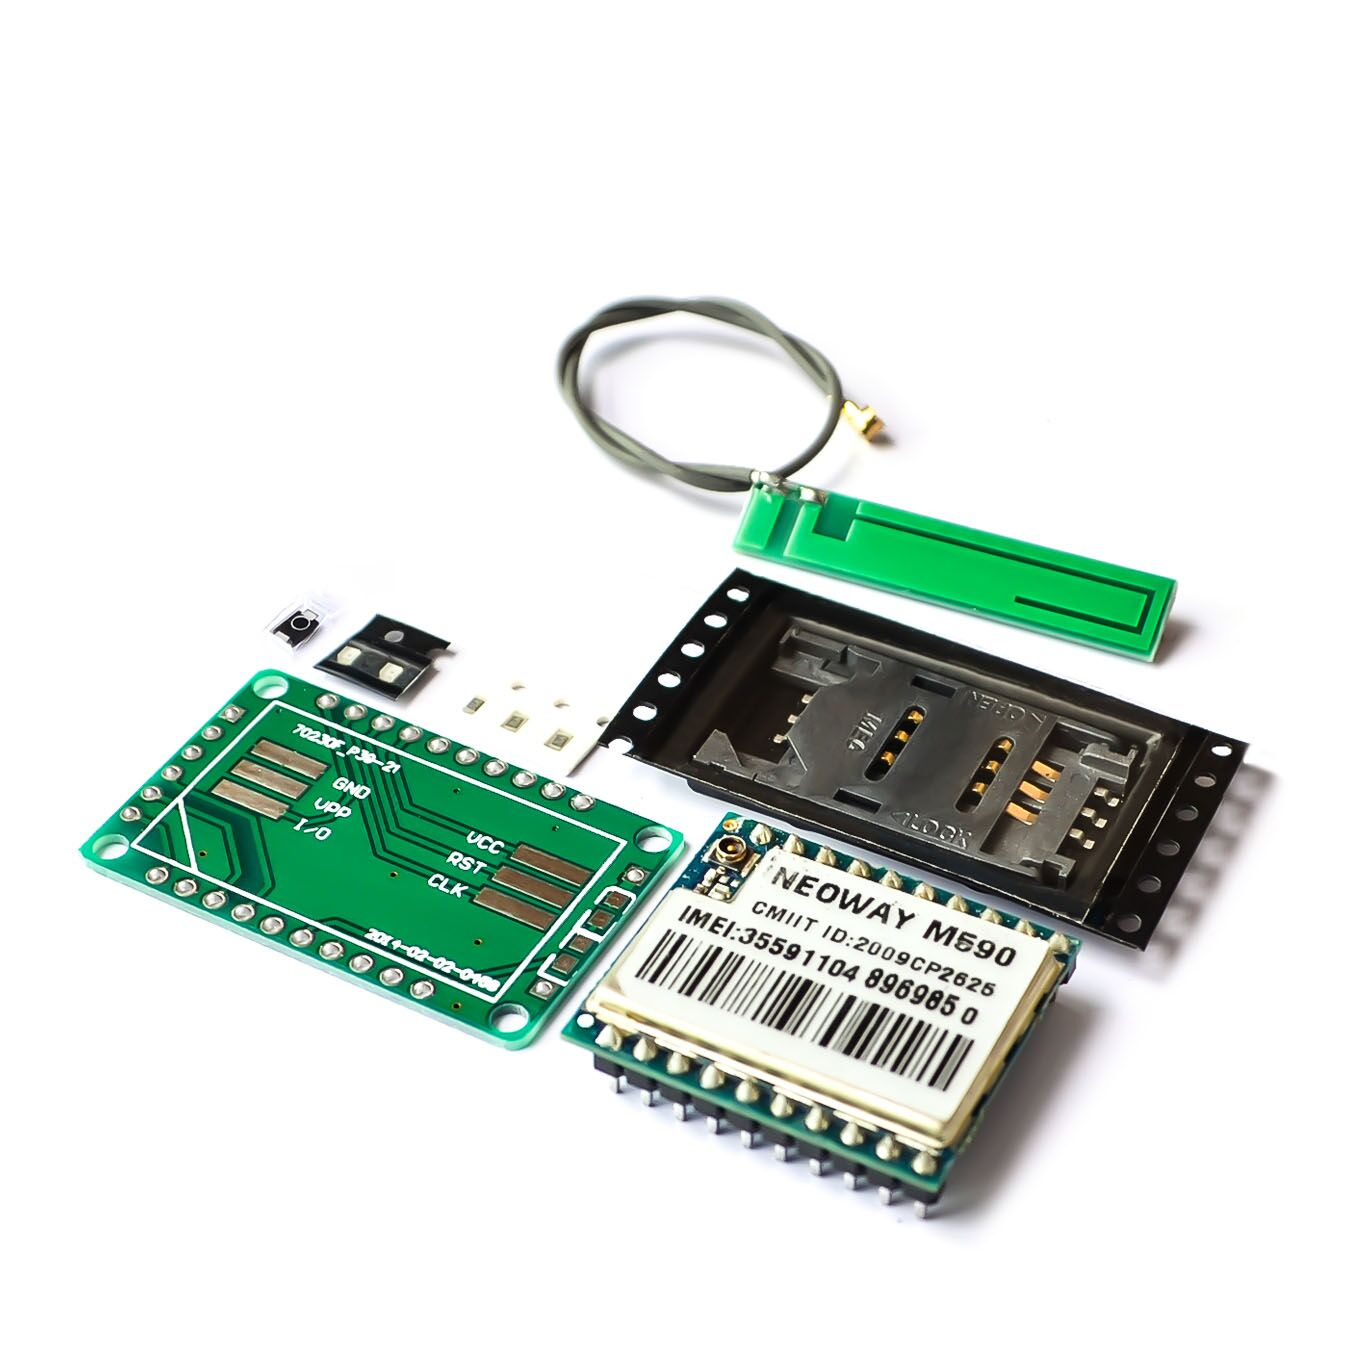 US $1 01 8% OFF|DIY KIT GSM GPRS M590 gsm module Short Message Service SMS  module for project for Arduino remote sensing alarm-in Integrated Circuits